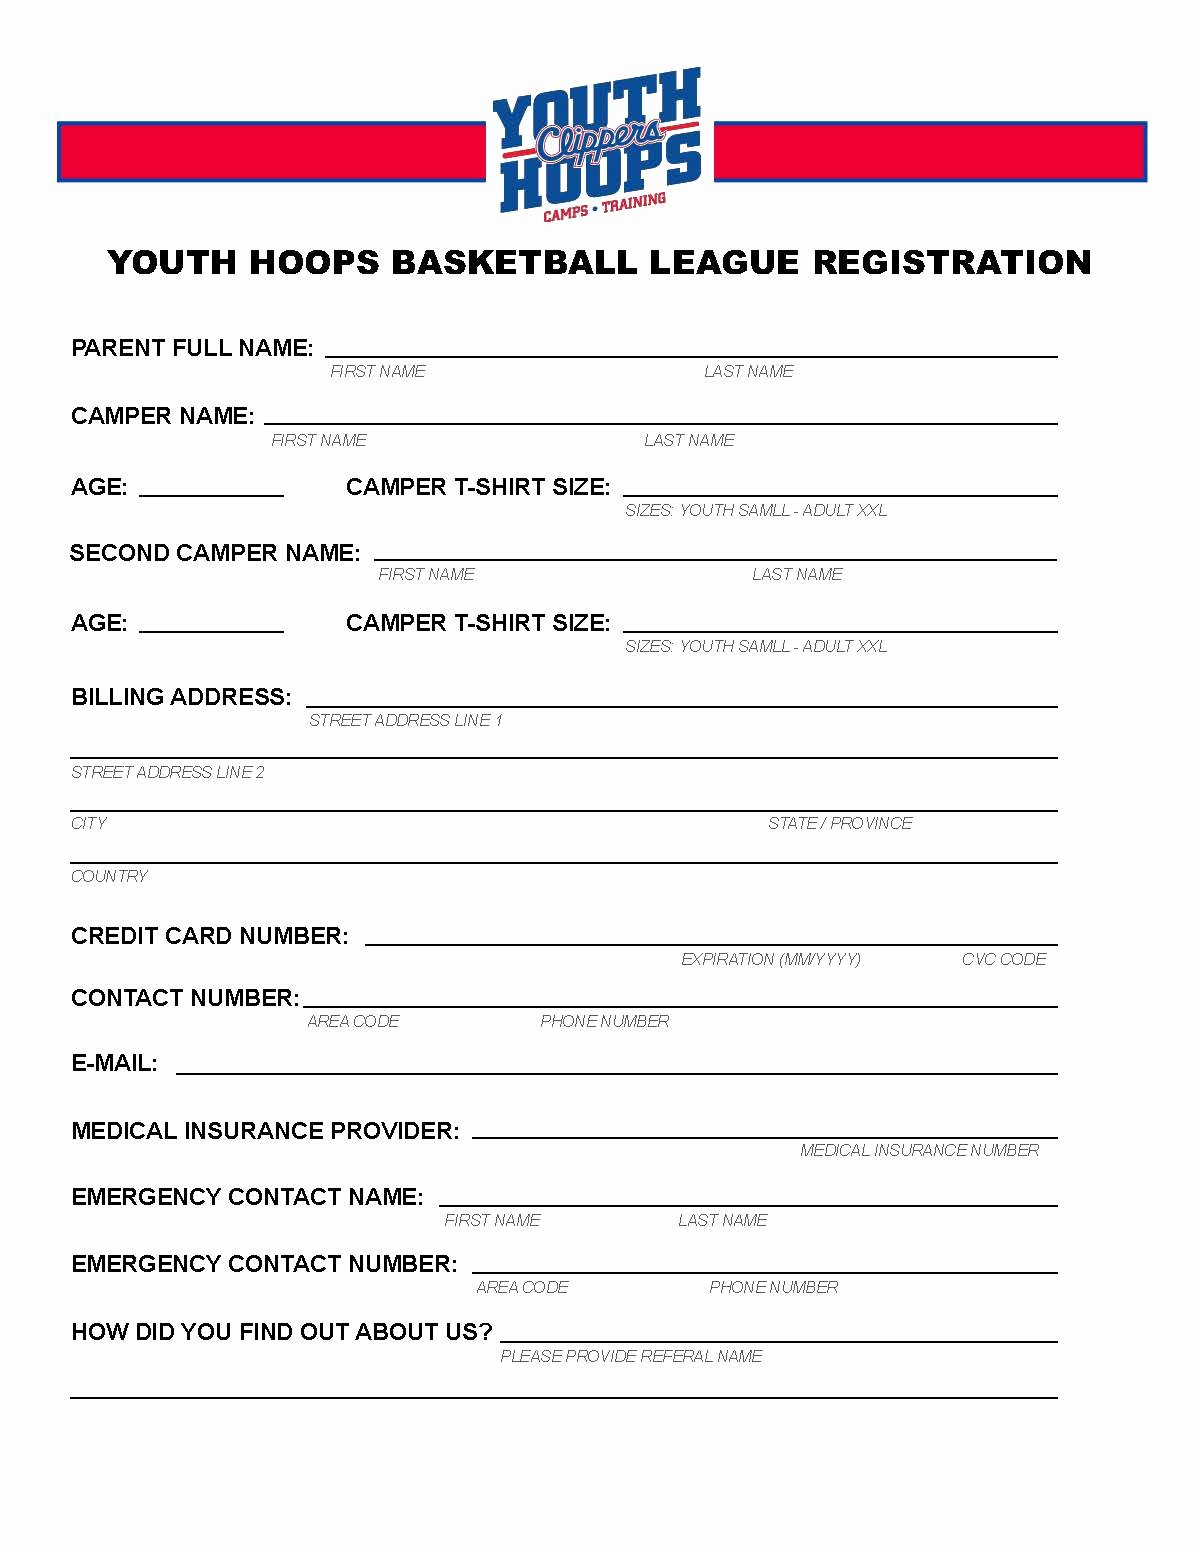 Basketball tournament Registration form Template Best Of Clippers Youth Hoops Basketball League Pdf